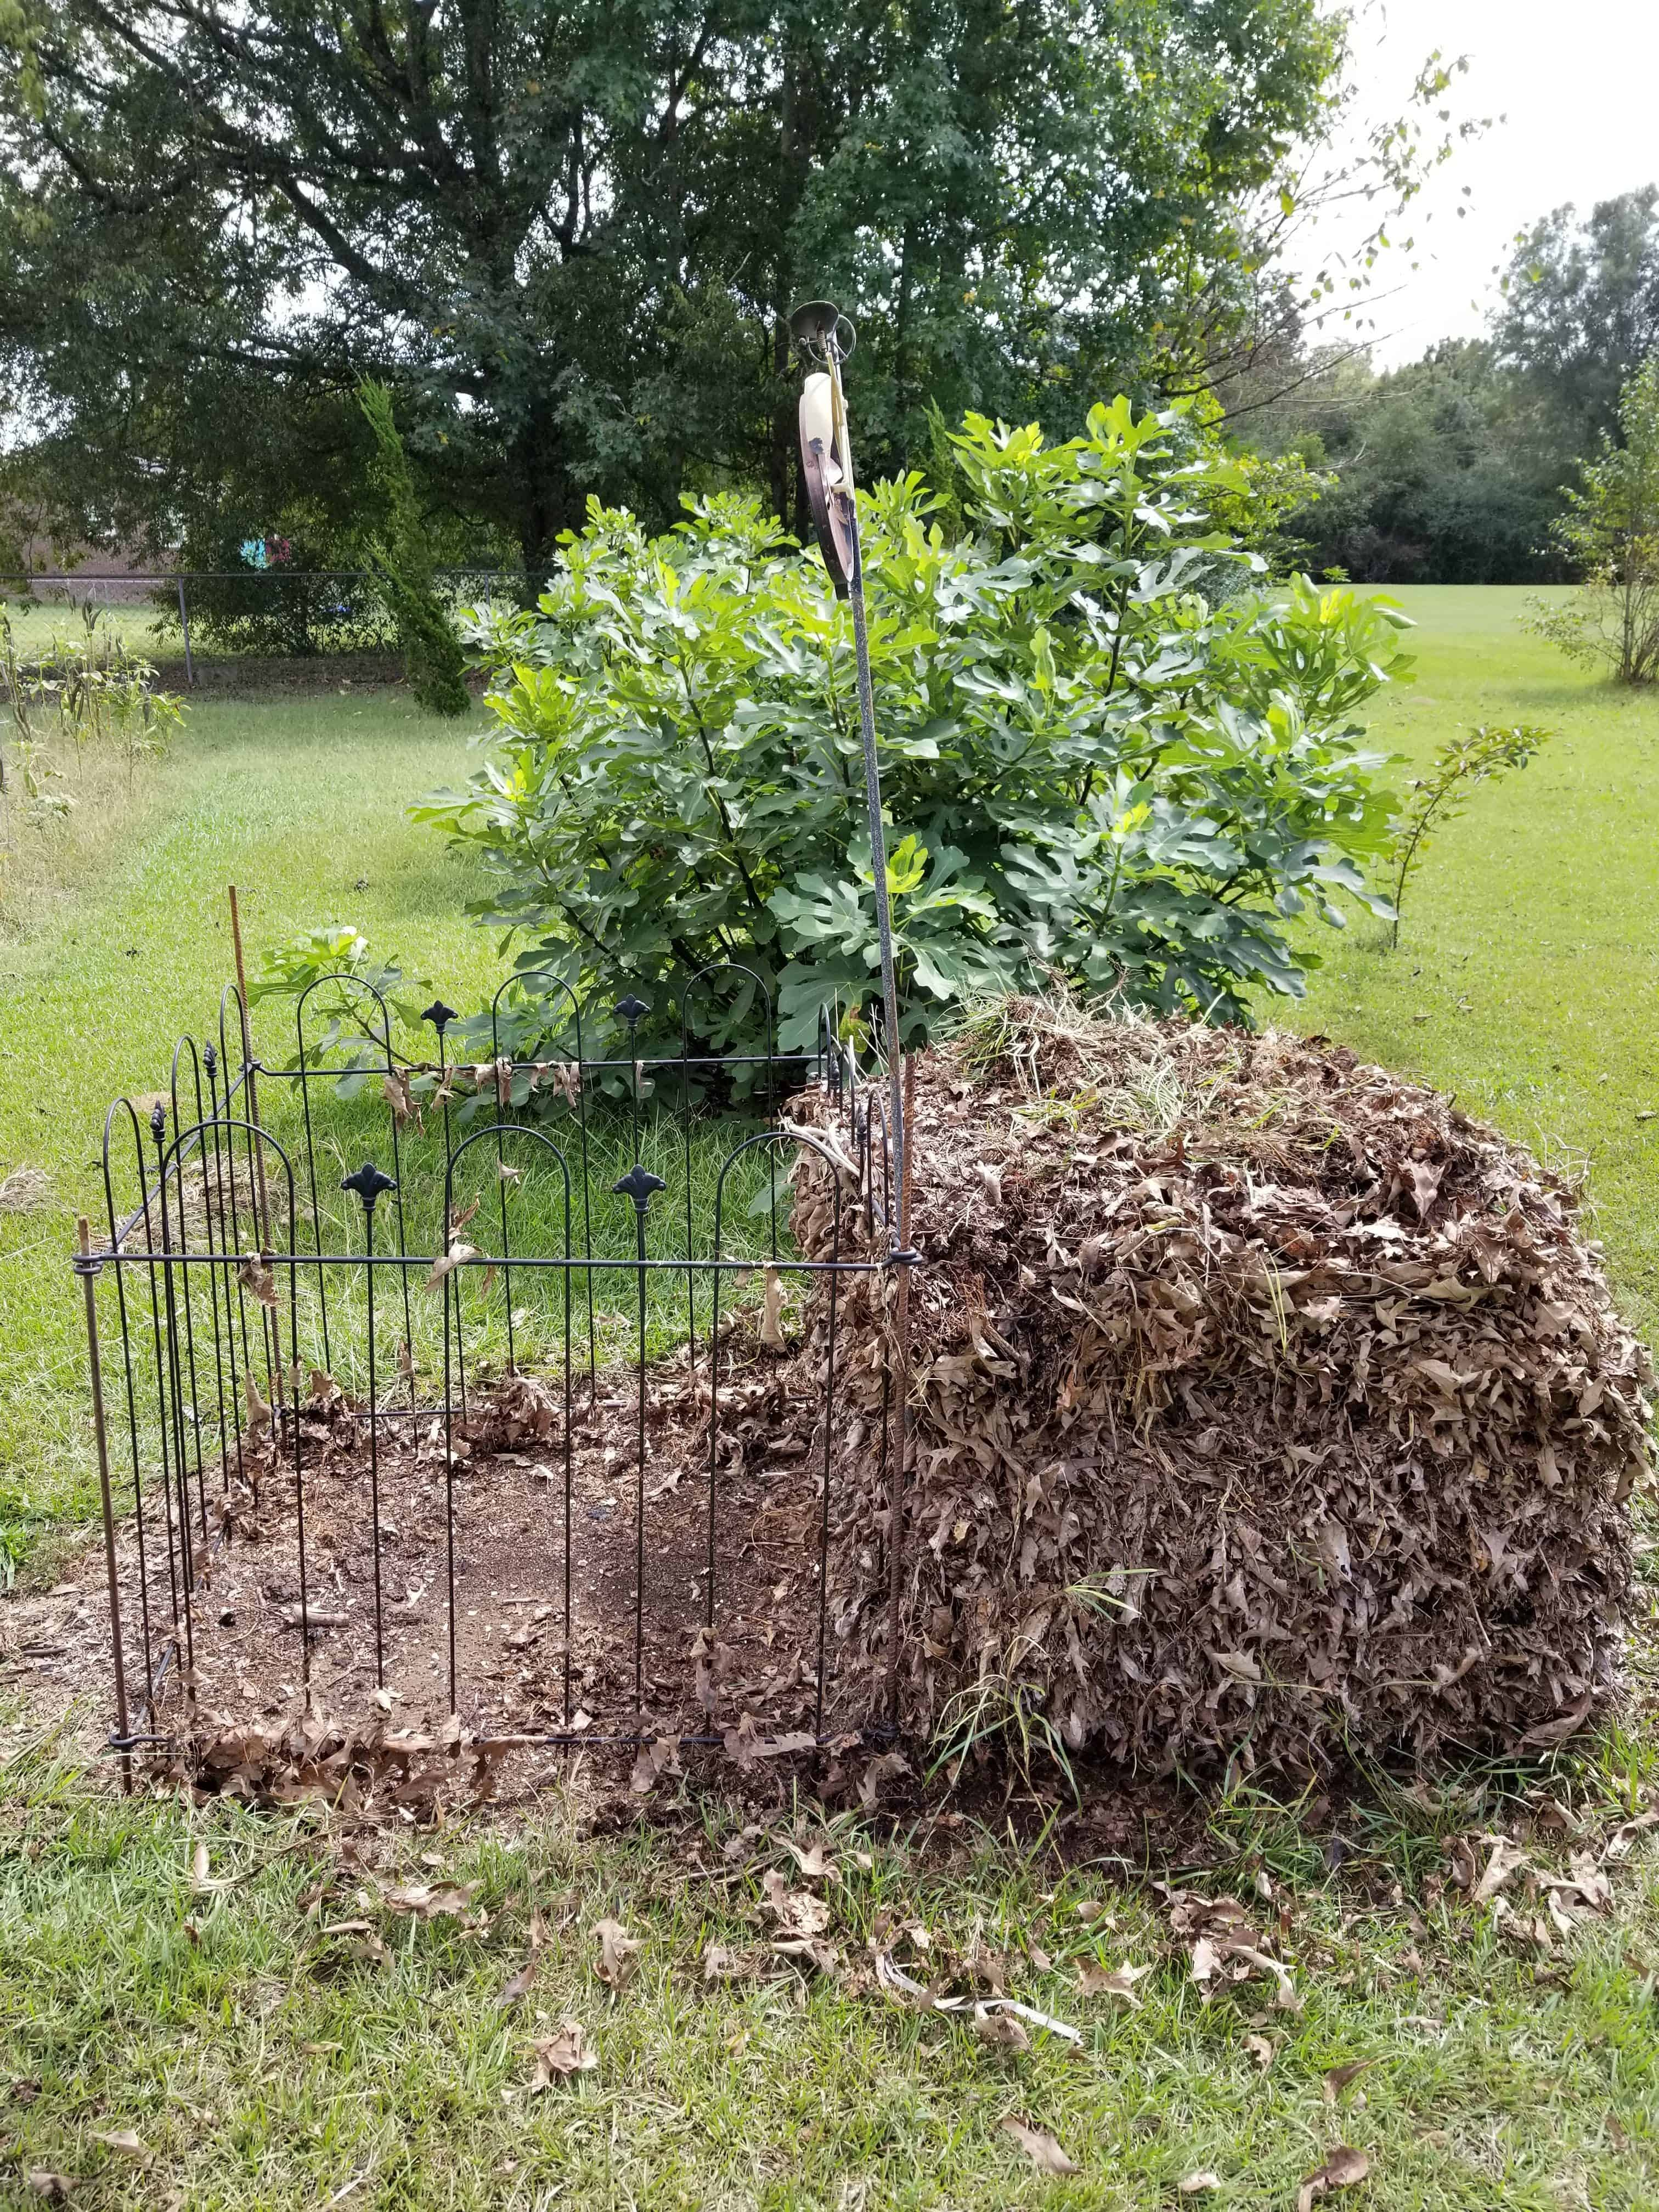 Fall is the perfect time to begin a compost pile from all the free ingredients of falling leaves